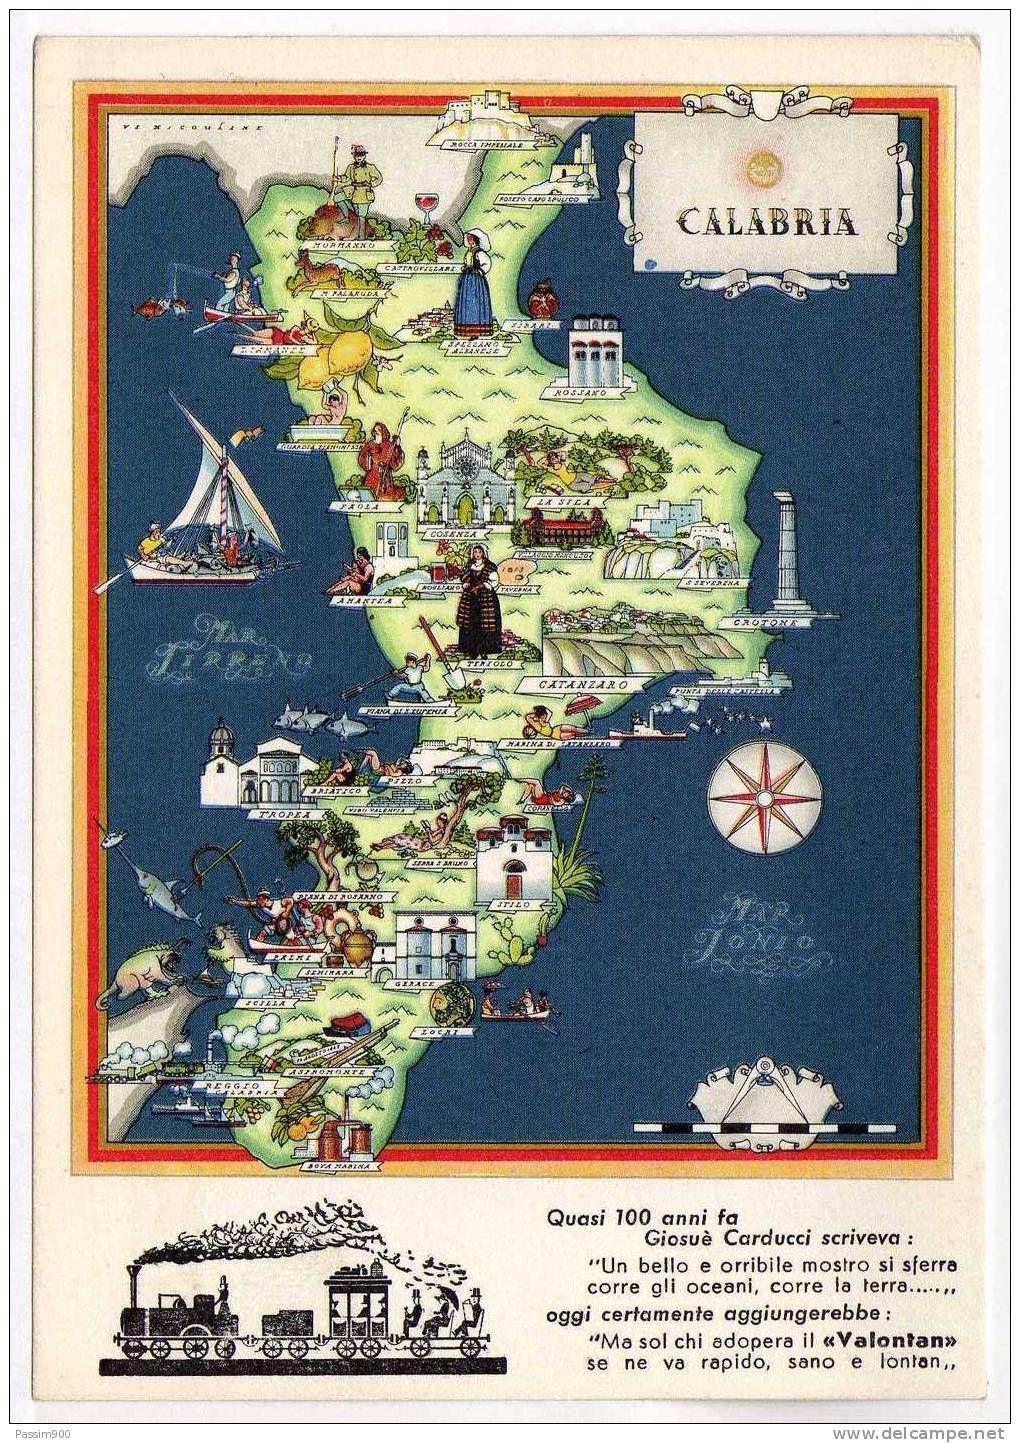 Nicouline Map of Calabria Interesting Maps of Italy Pinterest